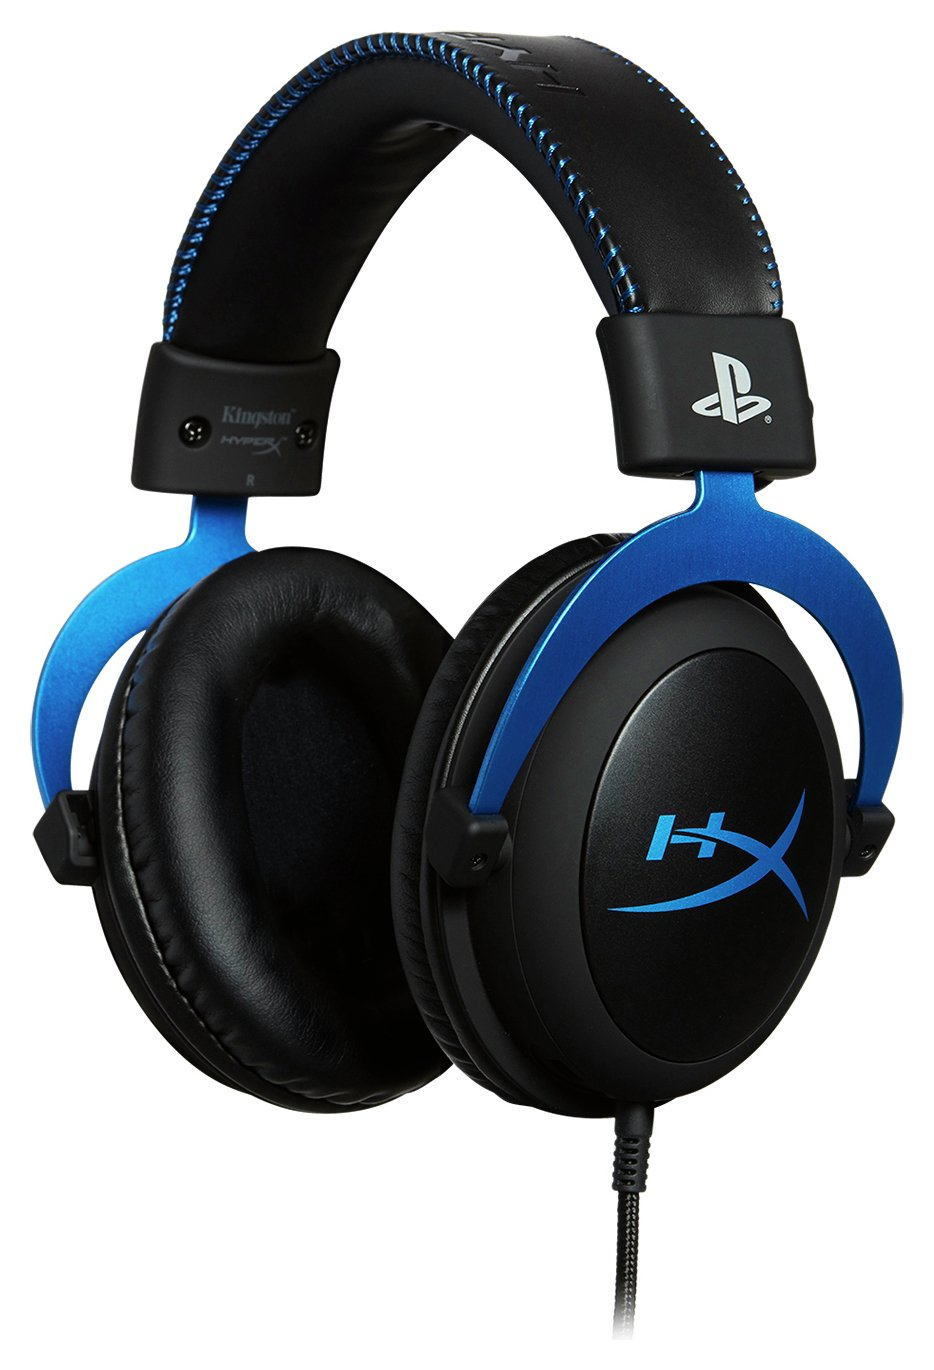 HyperX Cloud Gaming Headset PS4 - Blue from Hyper X